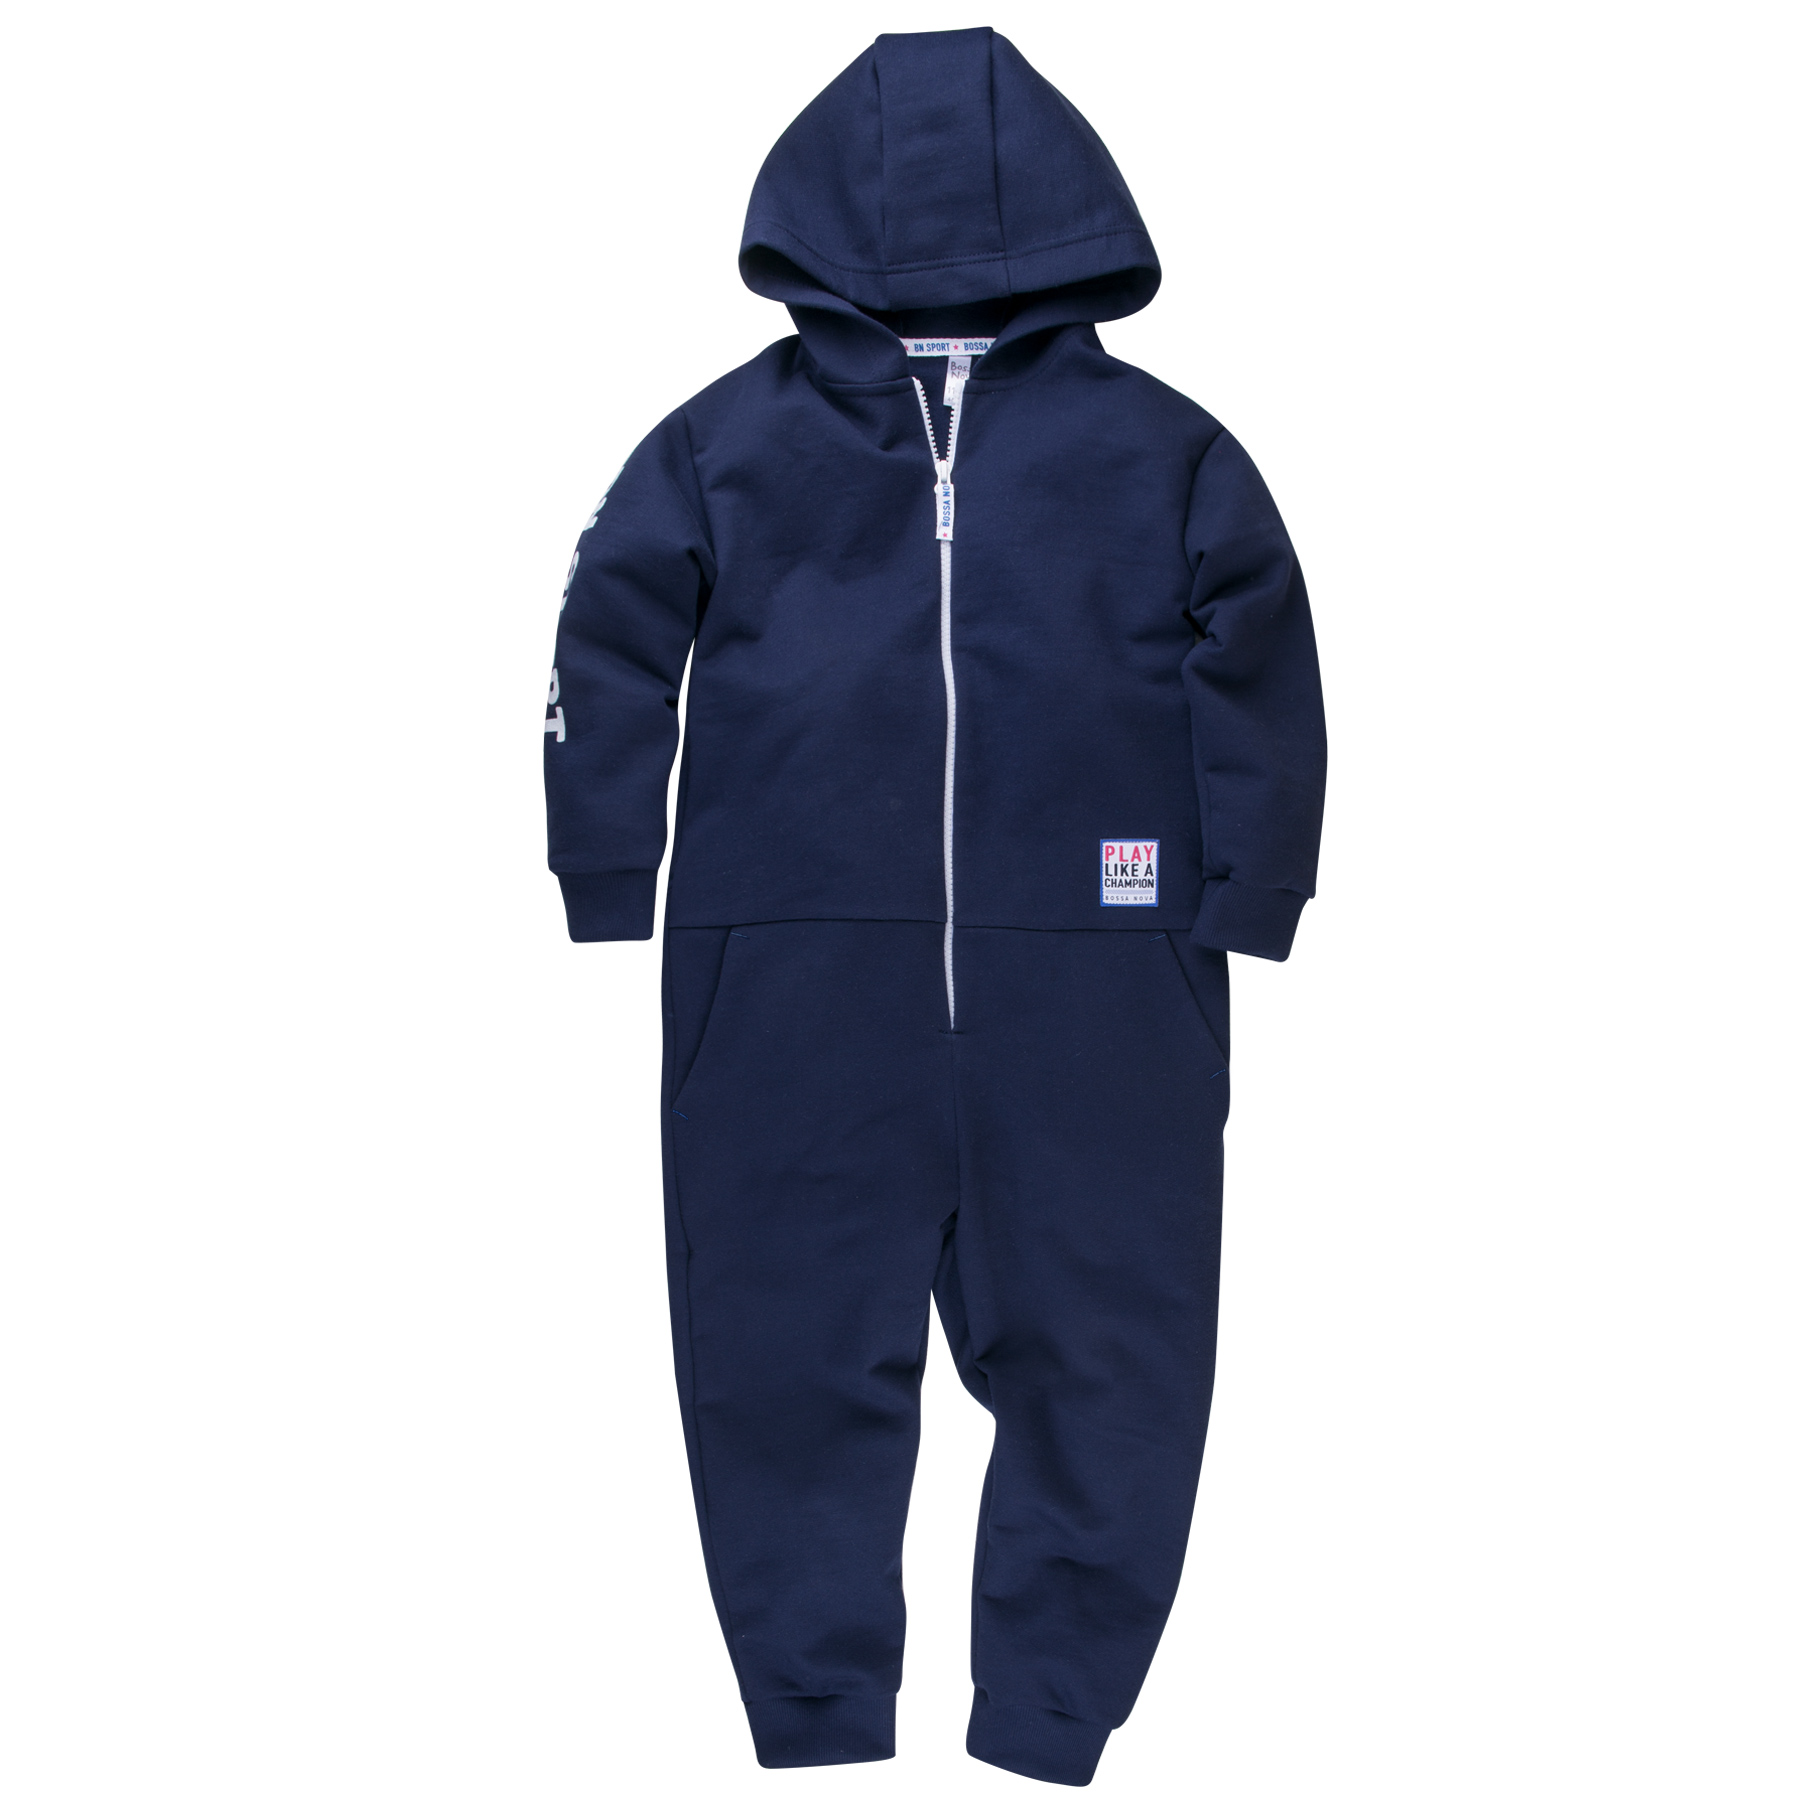 Jumpsuit with hoodie for boy BOSSA NOVA 510b-462c kid clothes цена